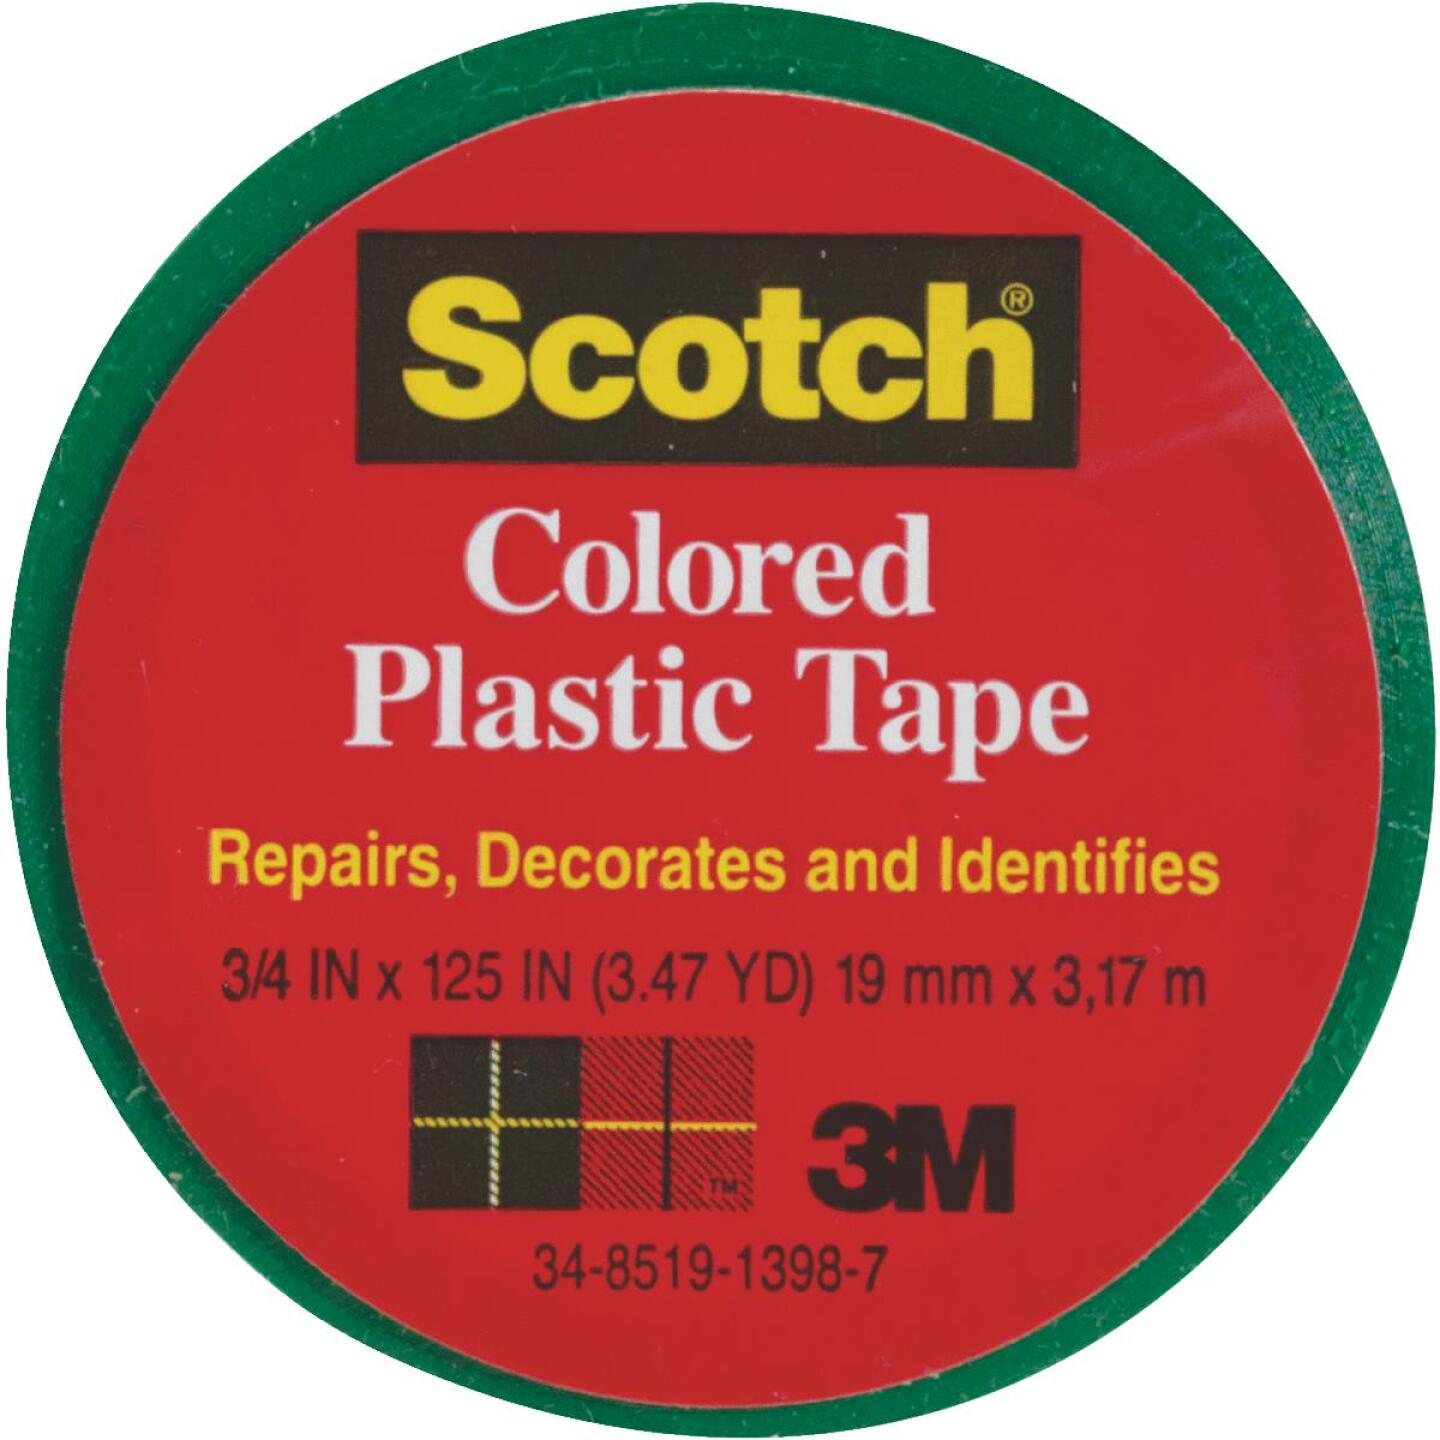 Scotch 3/4 In. Green Colored Plastic Tape Image 1